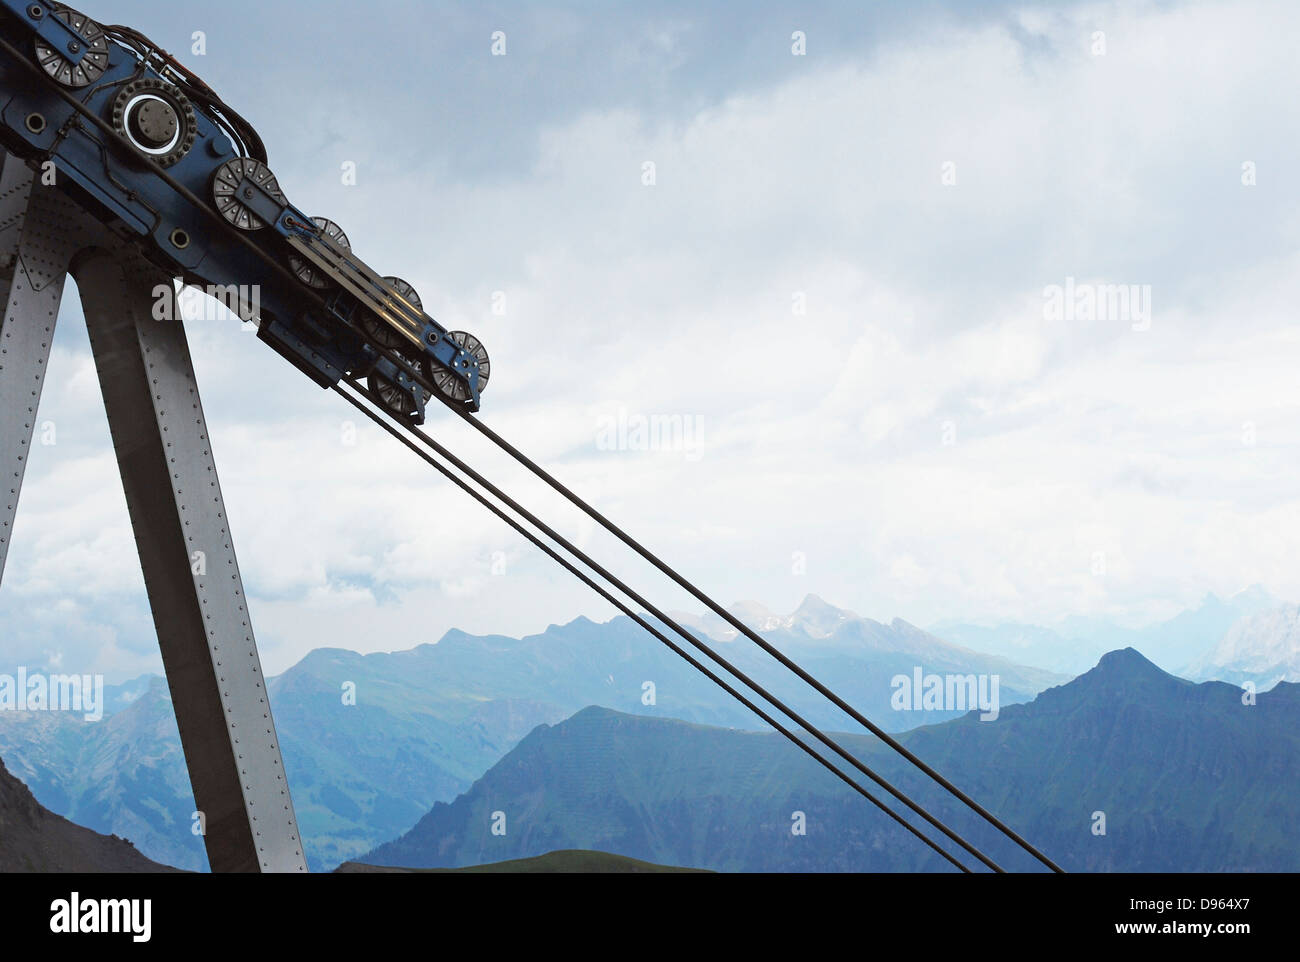 Pulley System Stock Photos & Pulley System Stock Images - Alamy